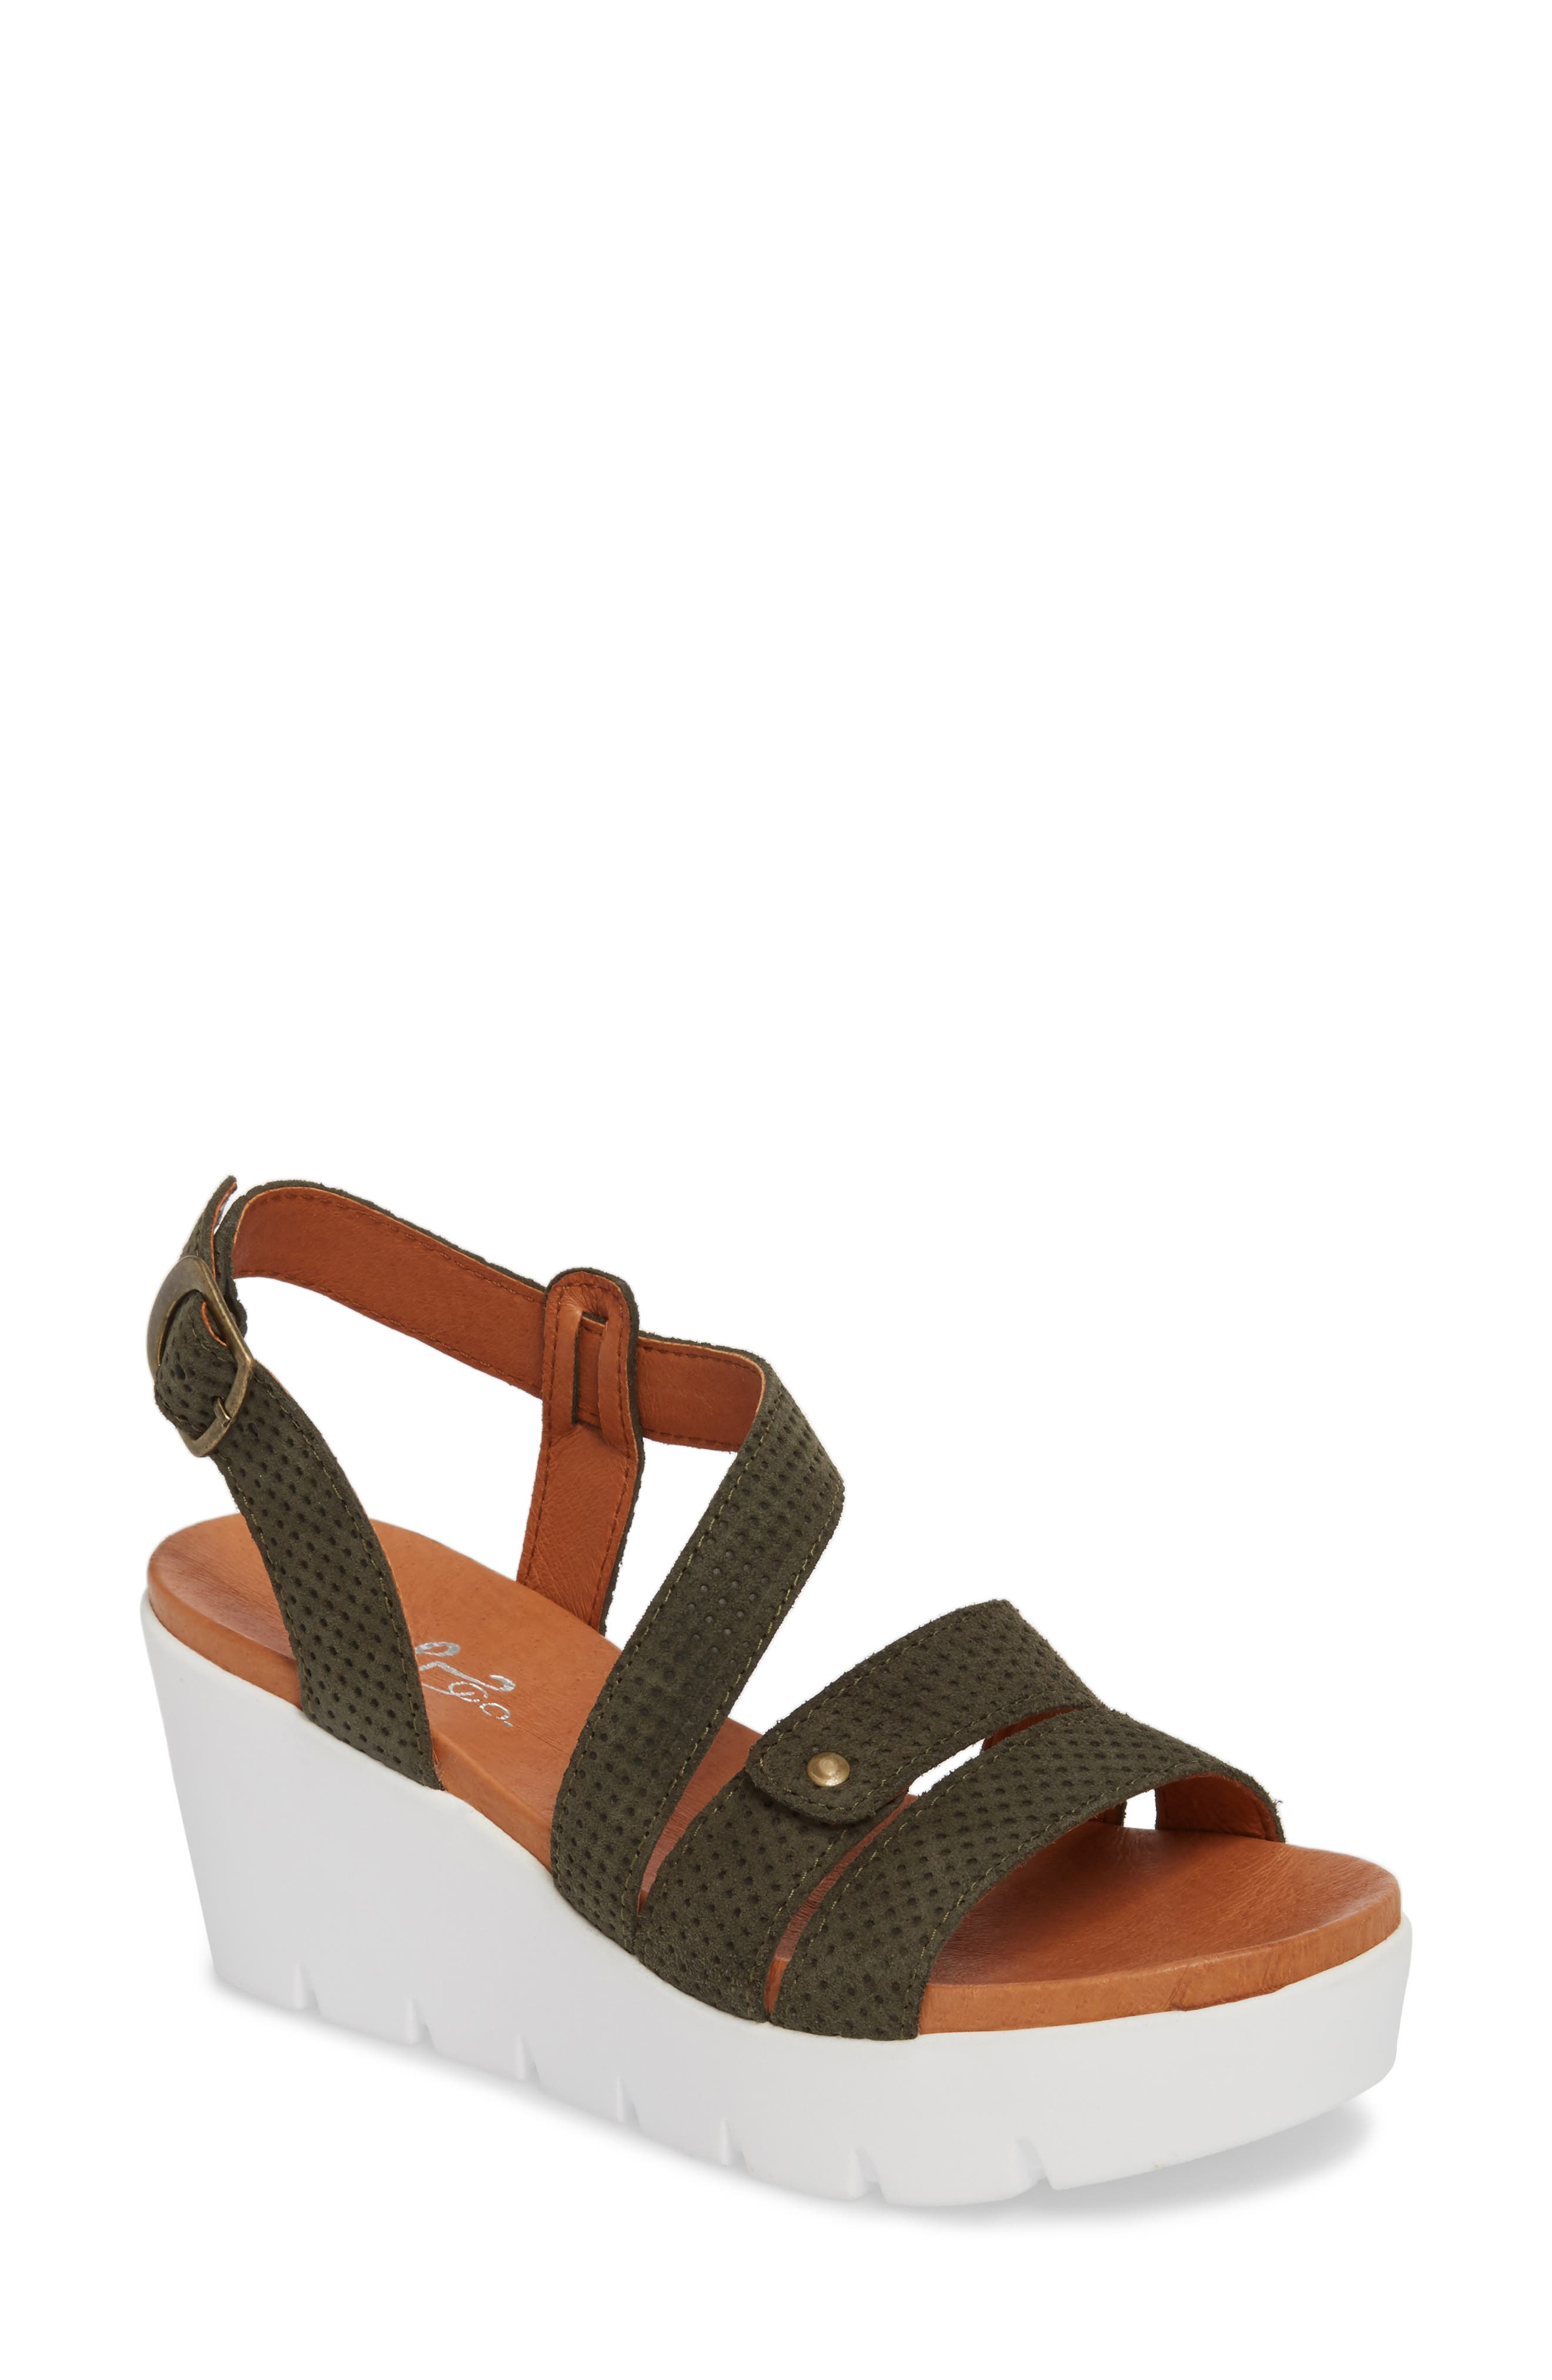 Sierra Platform Wedge Sandal,                         Main,                         color, MINT LEATHER